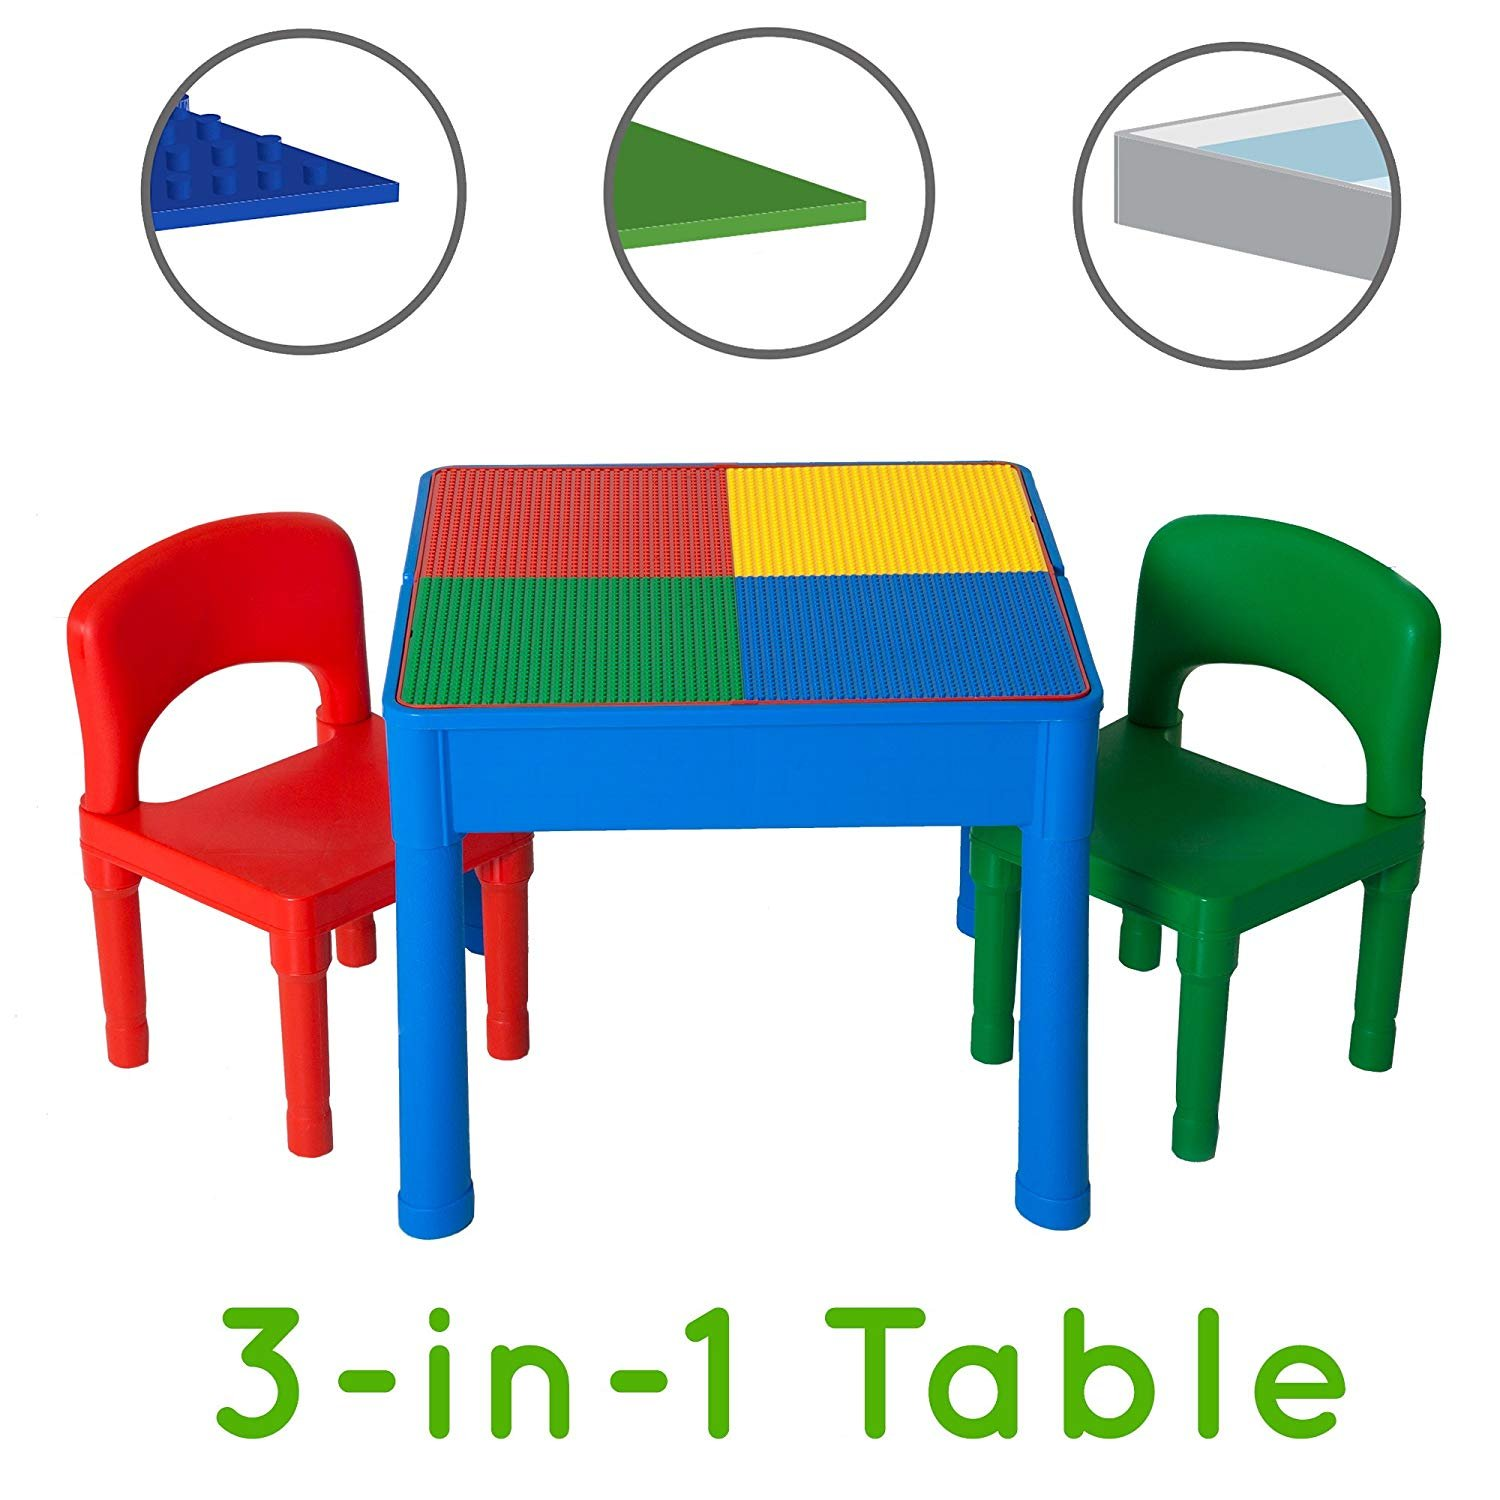 Play Platoon Kids Activity Table Set - 3 in 1 Water Table, Craft Table and Building Brick Table with Storage - Includes 2 Chairs and 25 Jumbo Bricks - Primary Colors by Play Platoon